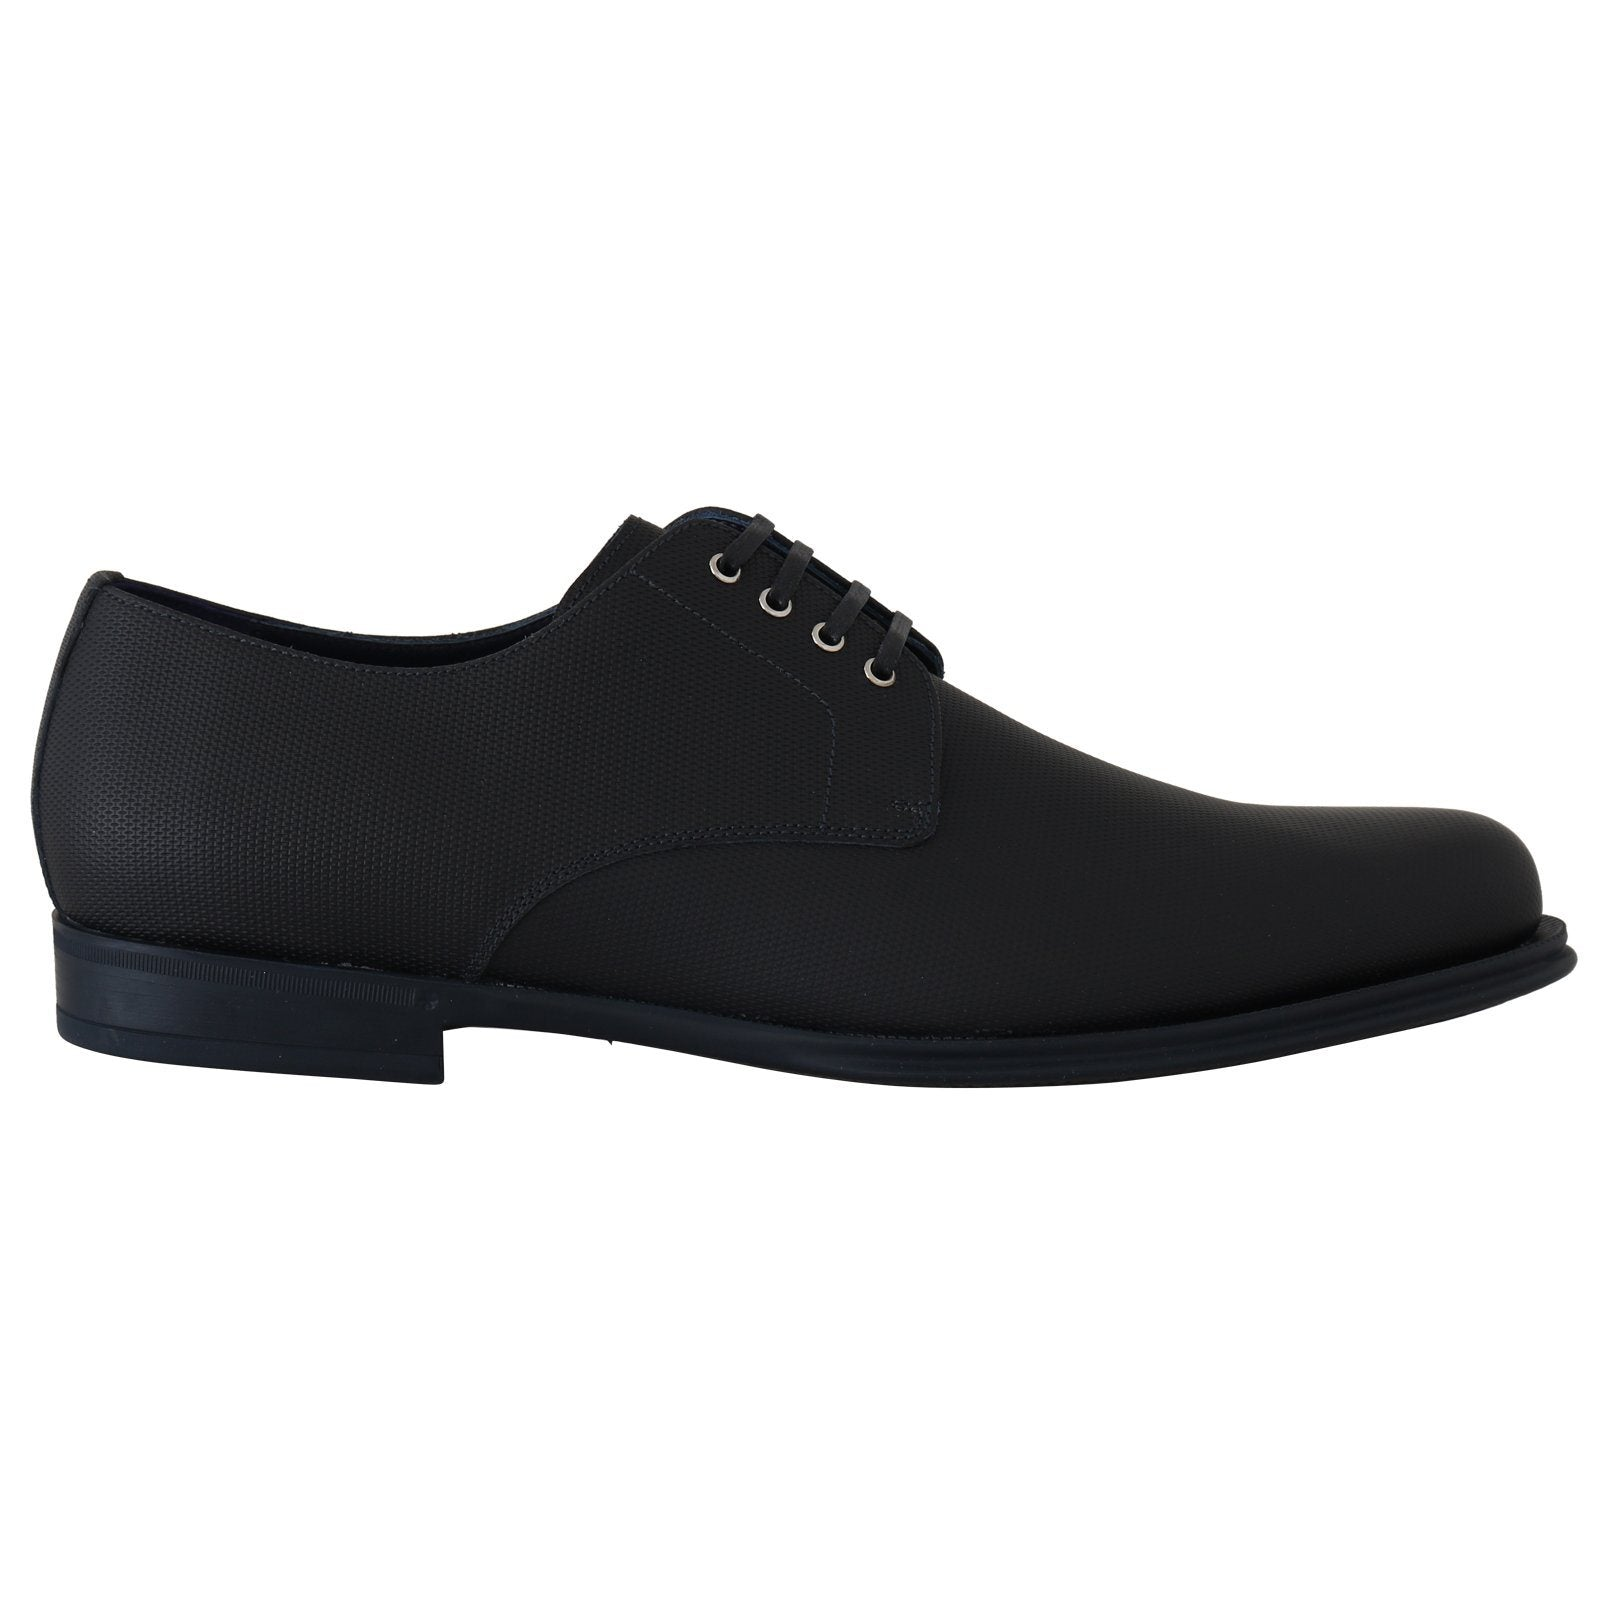 Blue Leather Derby Dress Formal Shoes Dolce & Gabbana